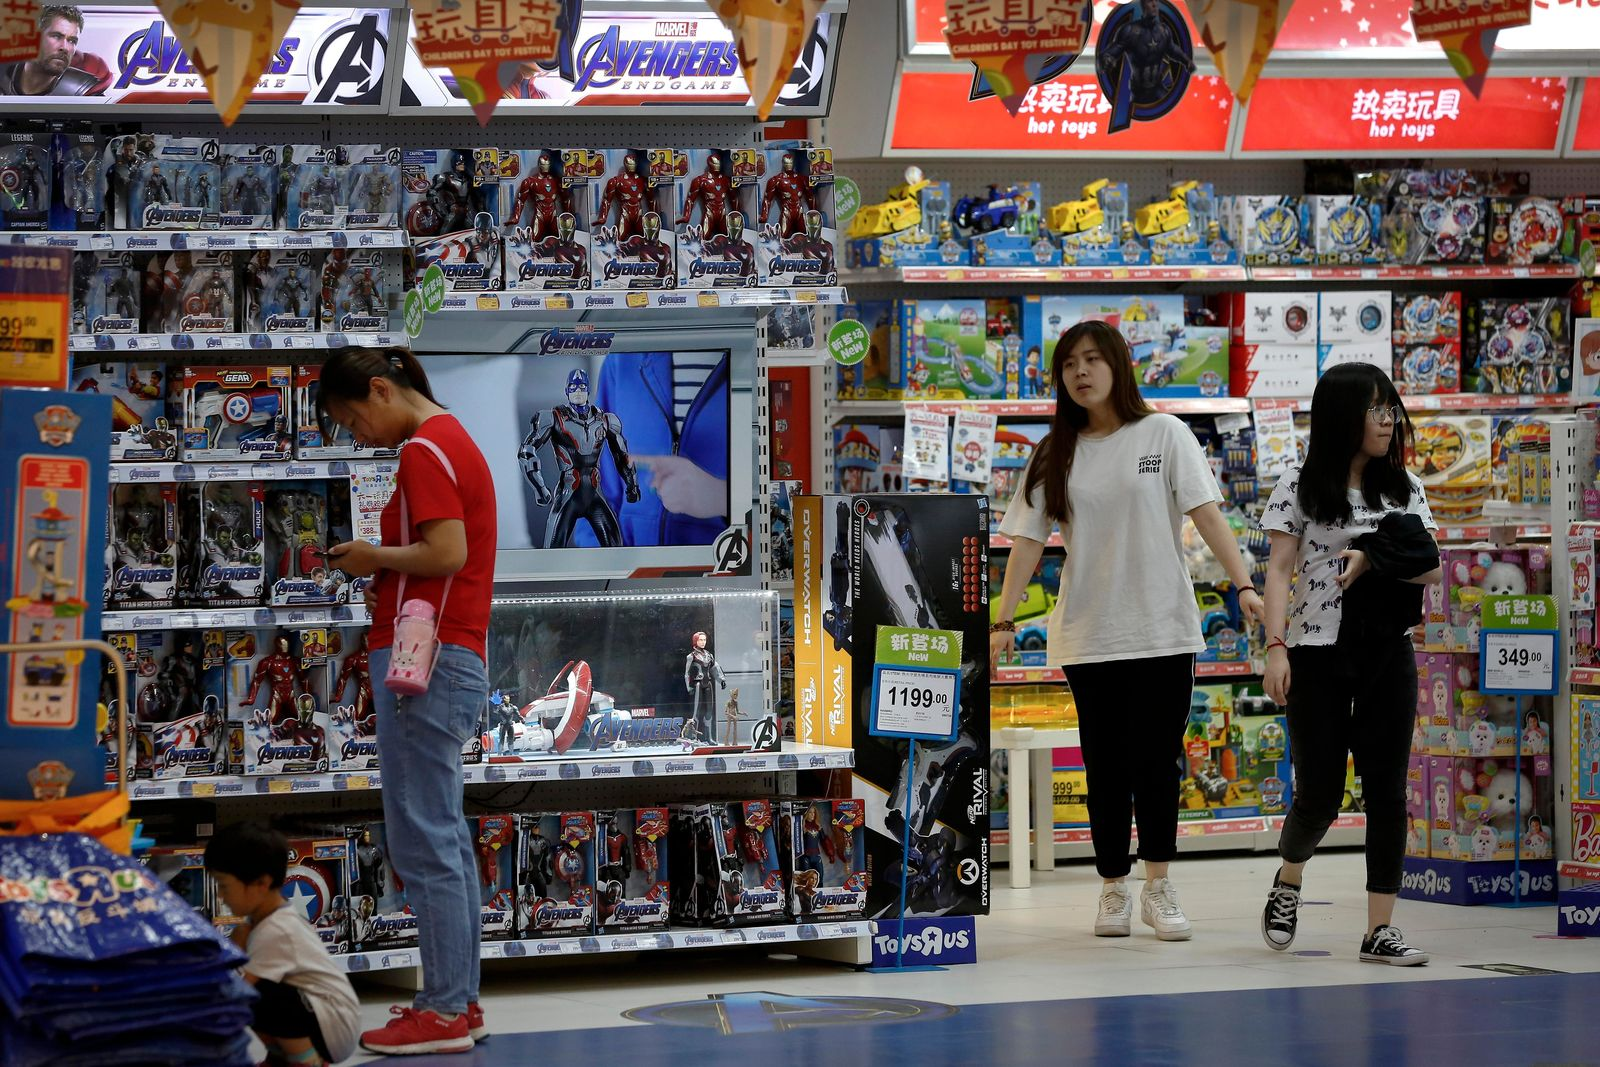 Customers shop near a section selling Marvel Avengers toys by American toymaker Hasbro at a toy store in Beijing, Thursday, May 23, 2019. An escalating trade war between the U.S. and China could mean higher prices on a broad array of products from toys to clothing. But some retailers will be less equipped to handle the pain than others, leaving consumers to carry the load. (AP Photo/Andy Wong)